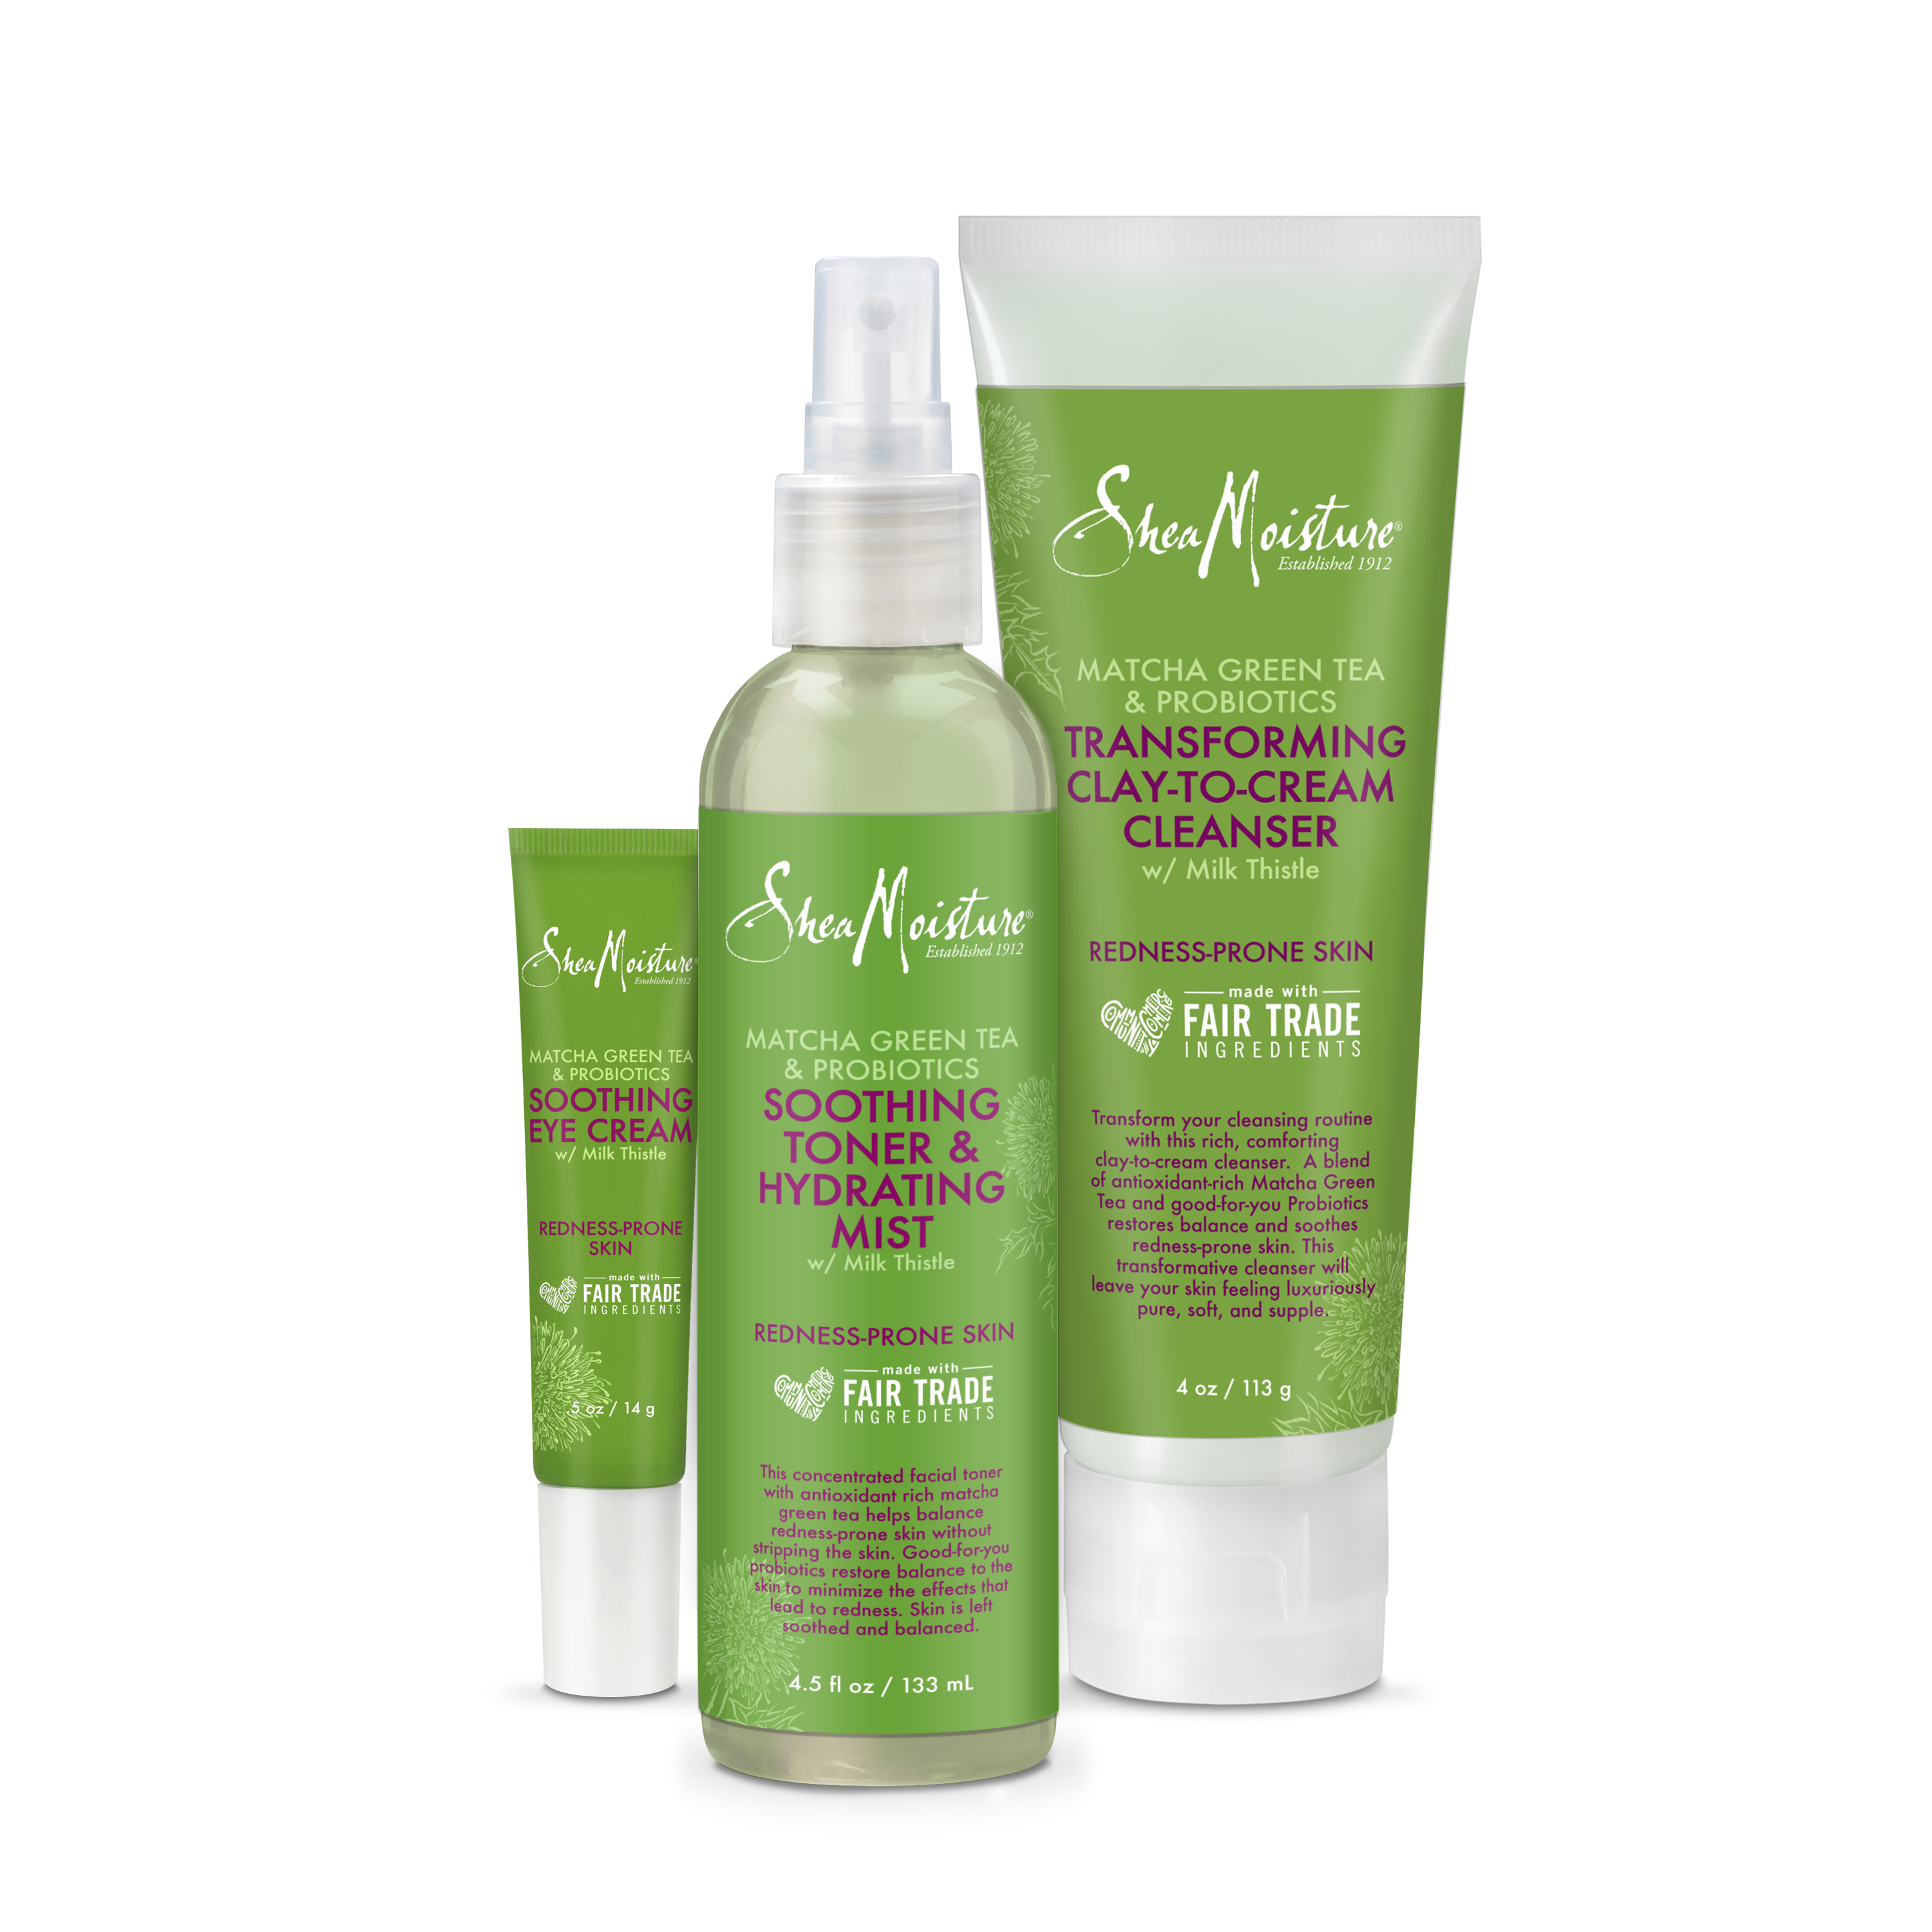 Matcha Green Tea & Probiotics Clay-To-Cream Cleanser by SheaMoisture #17